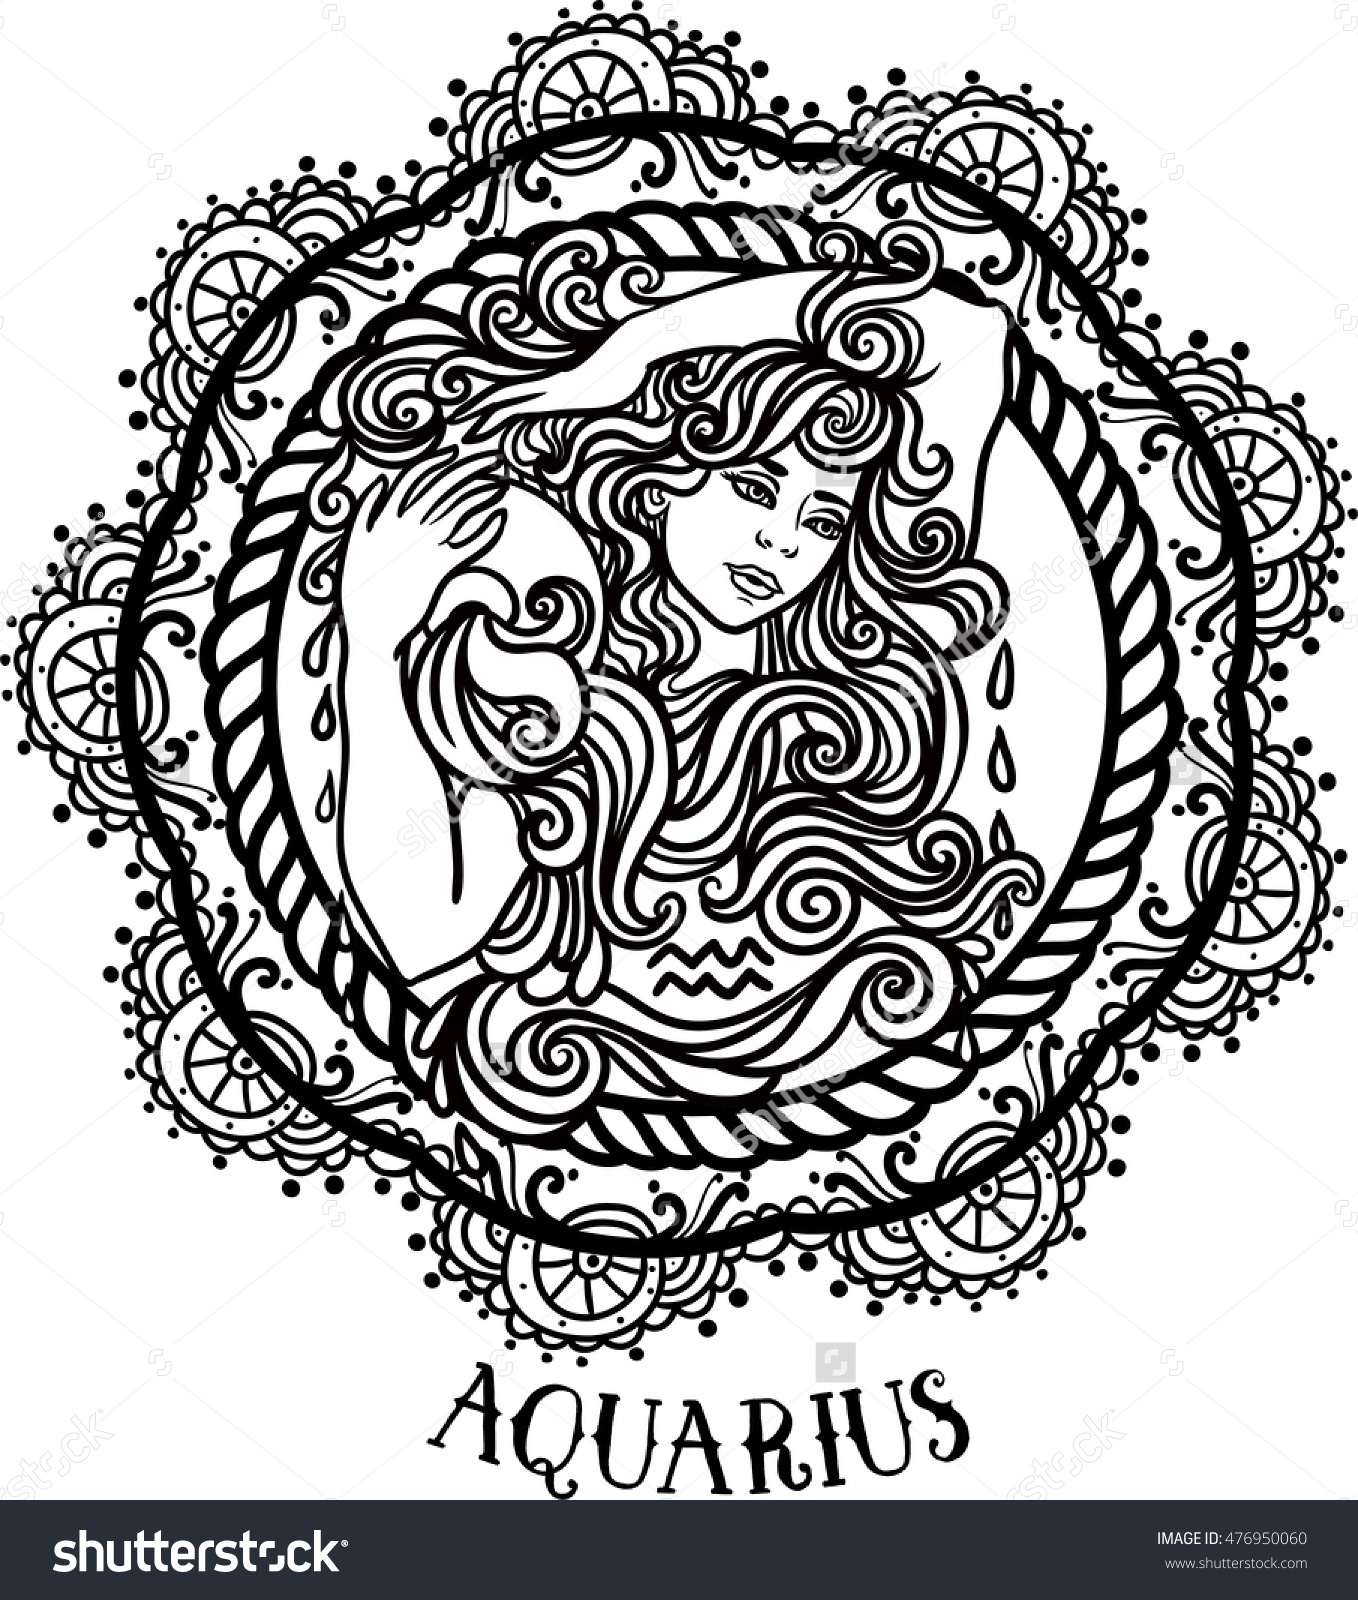 Aquarius (Astrology) coloring #5, Download drawings